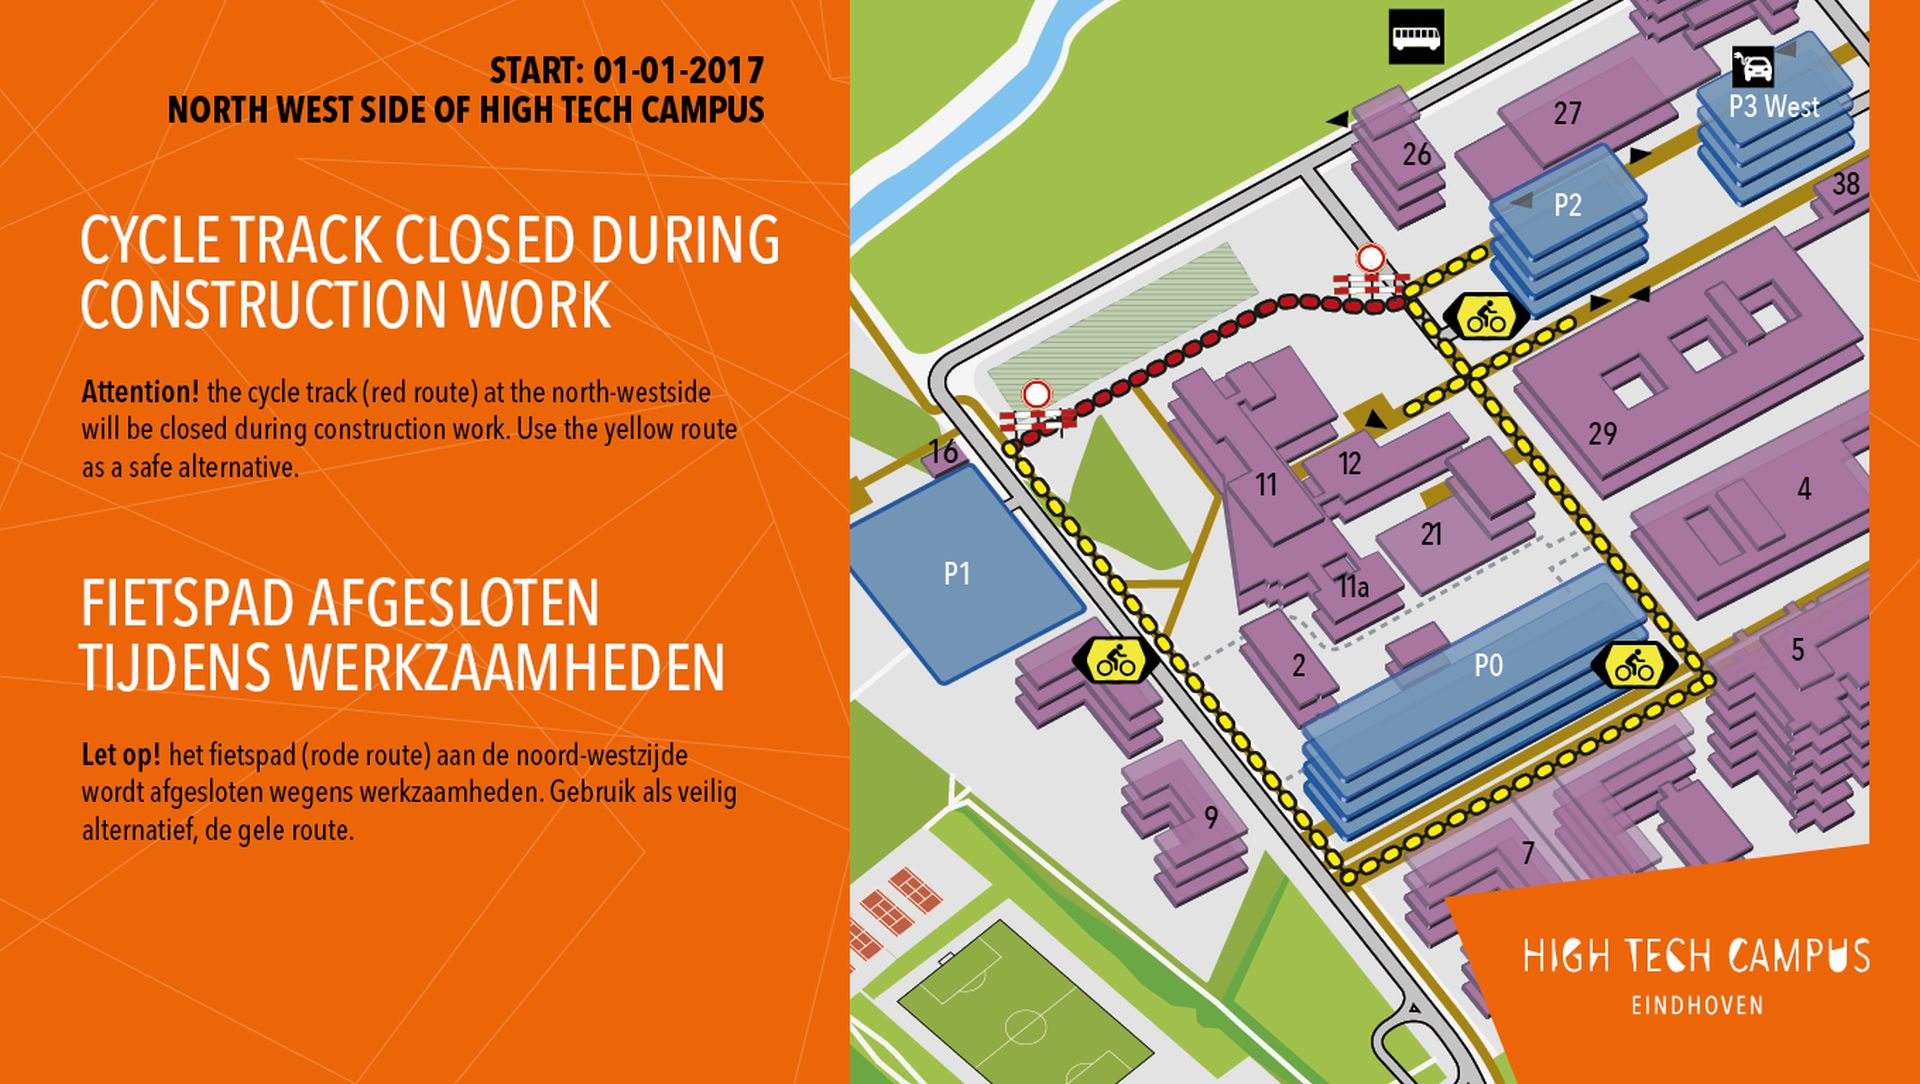 Campus: the cycle track will be limited accessible from 1-1-2017